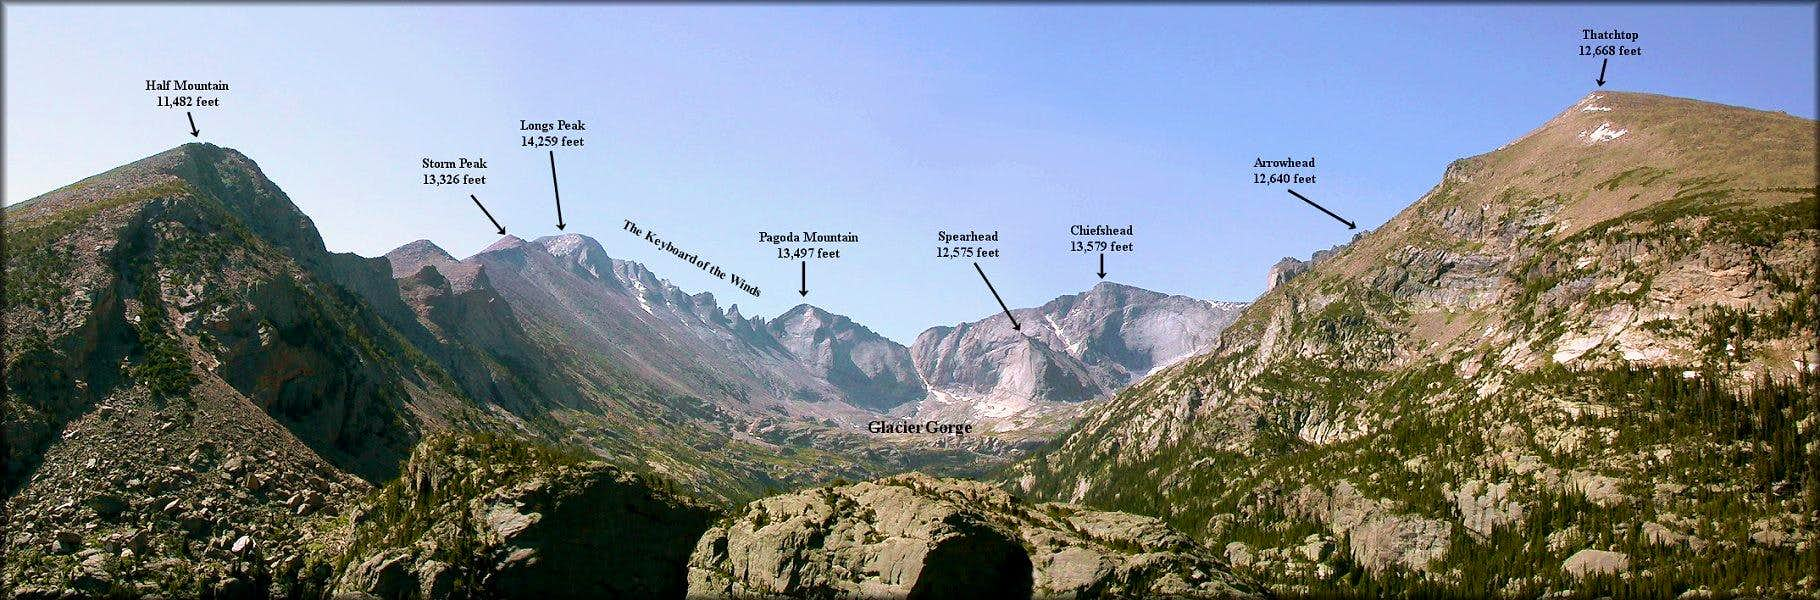 Annotated East Glacier Knob View